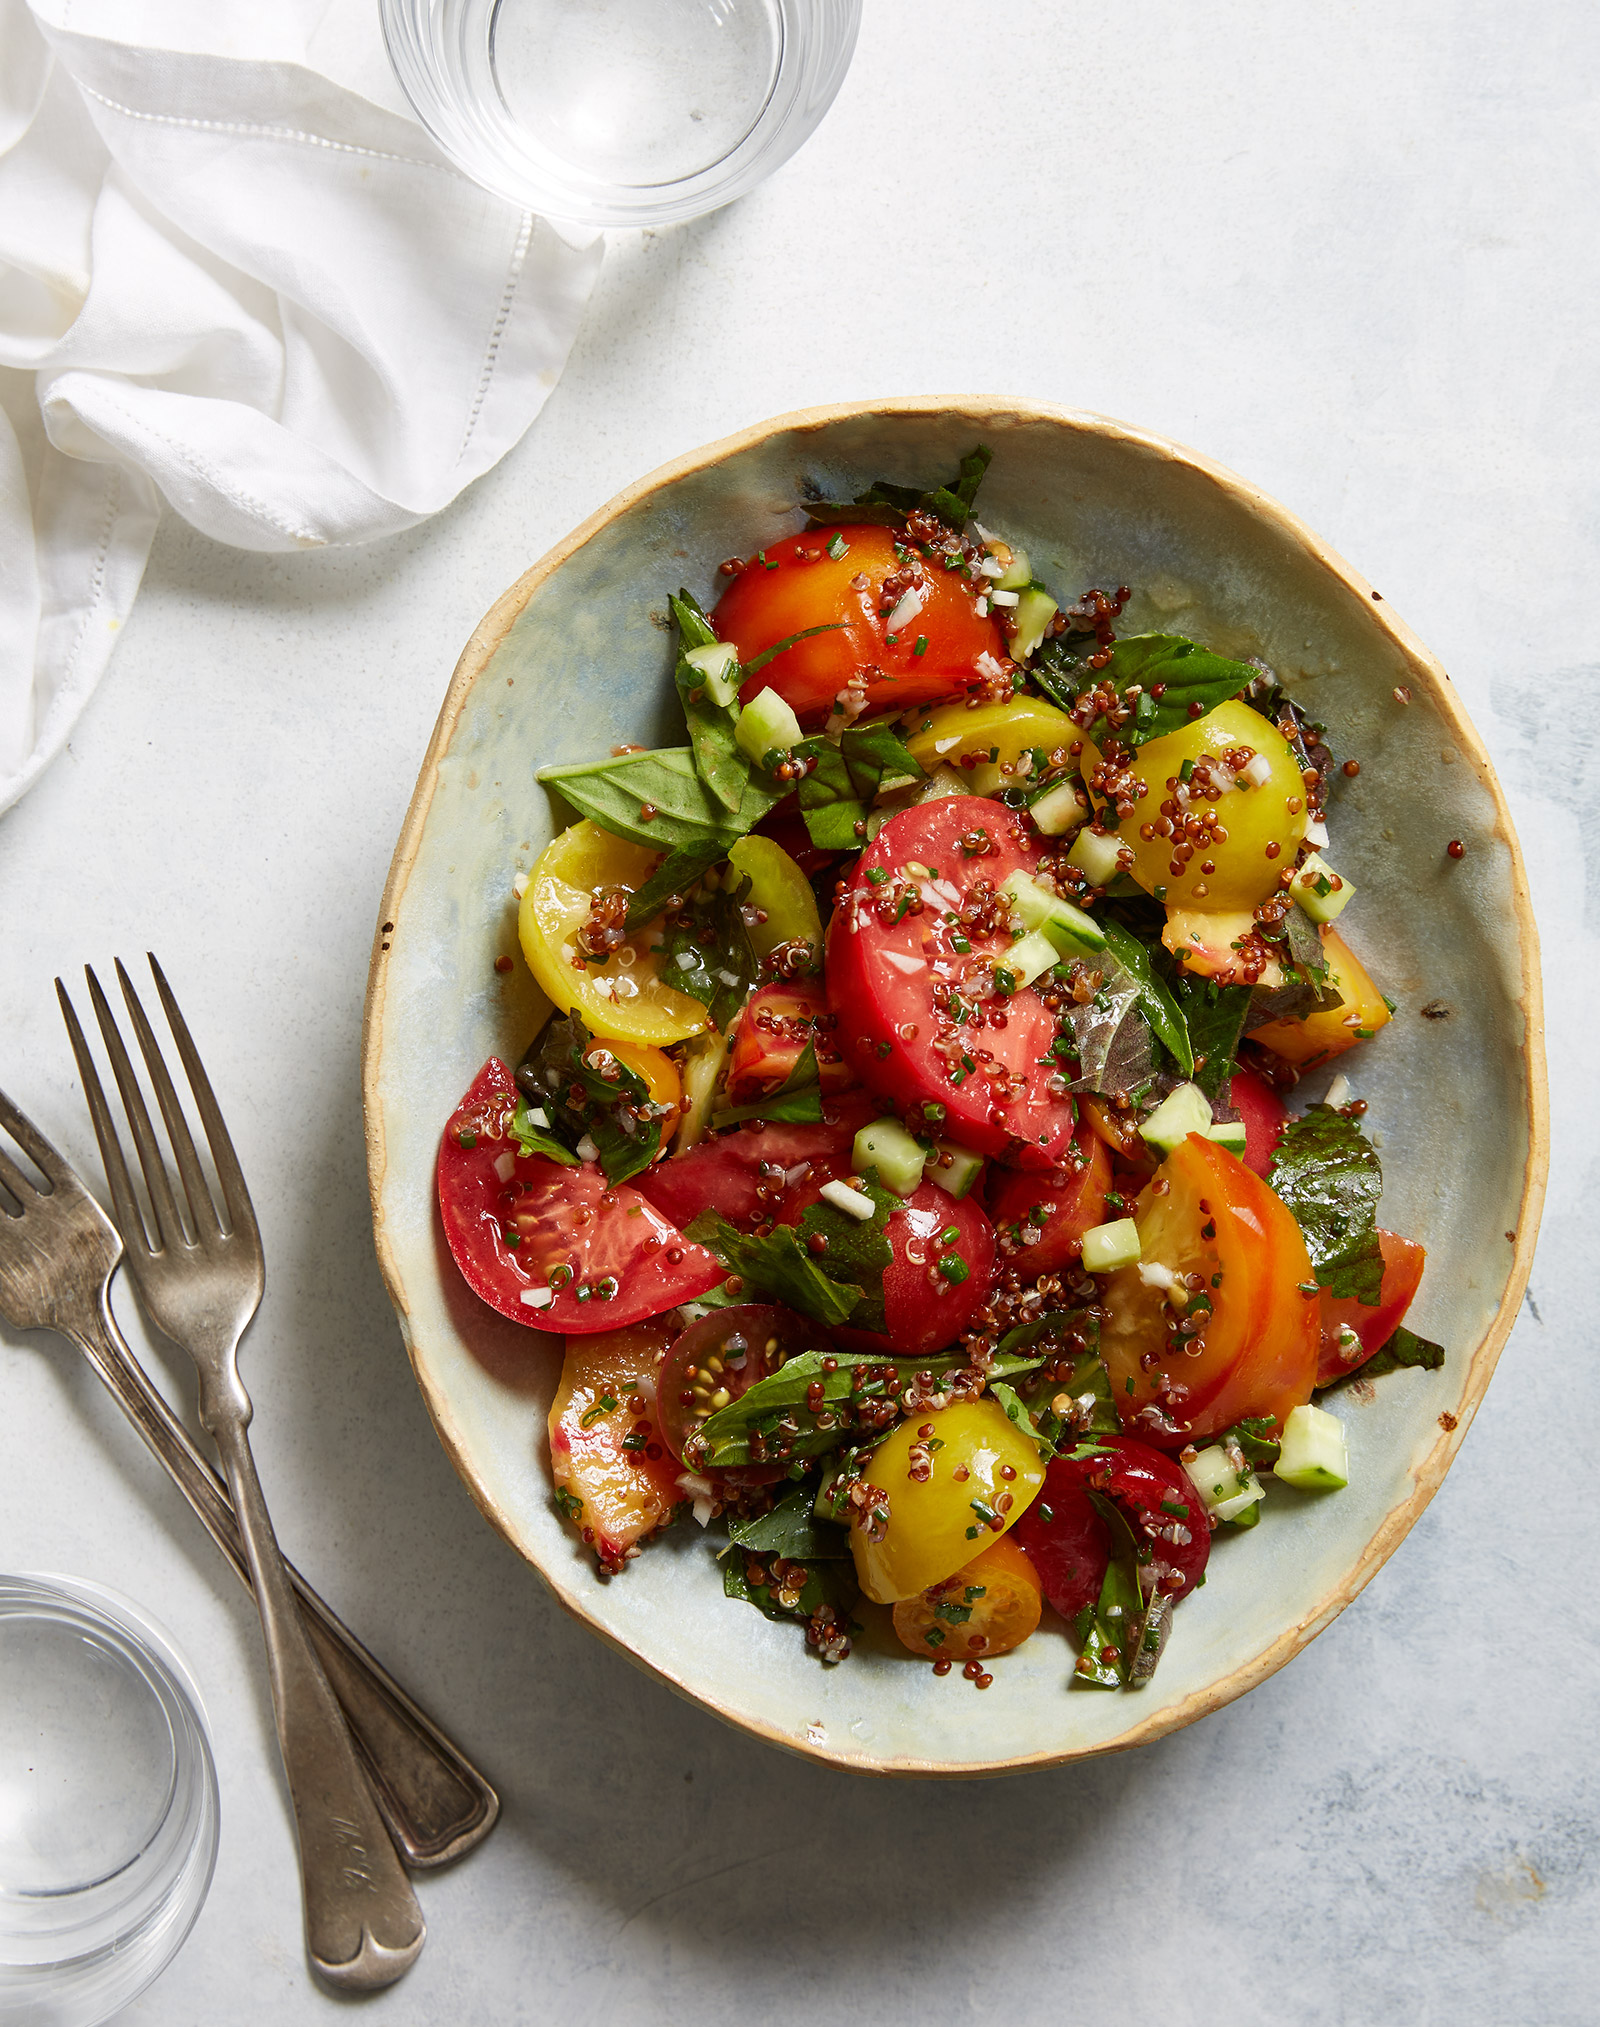 tomato salad with yellow plum, sesame leaf, shiso and fresh basil  Prop styling by Nidia Cueva